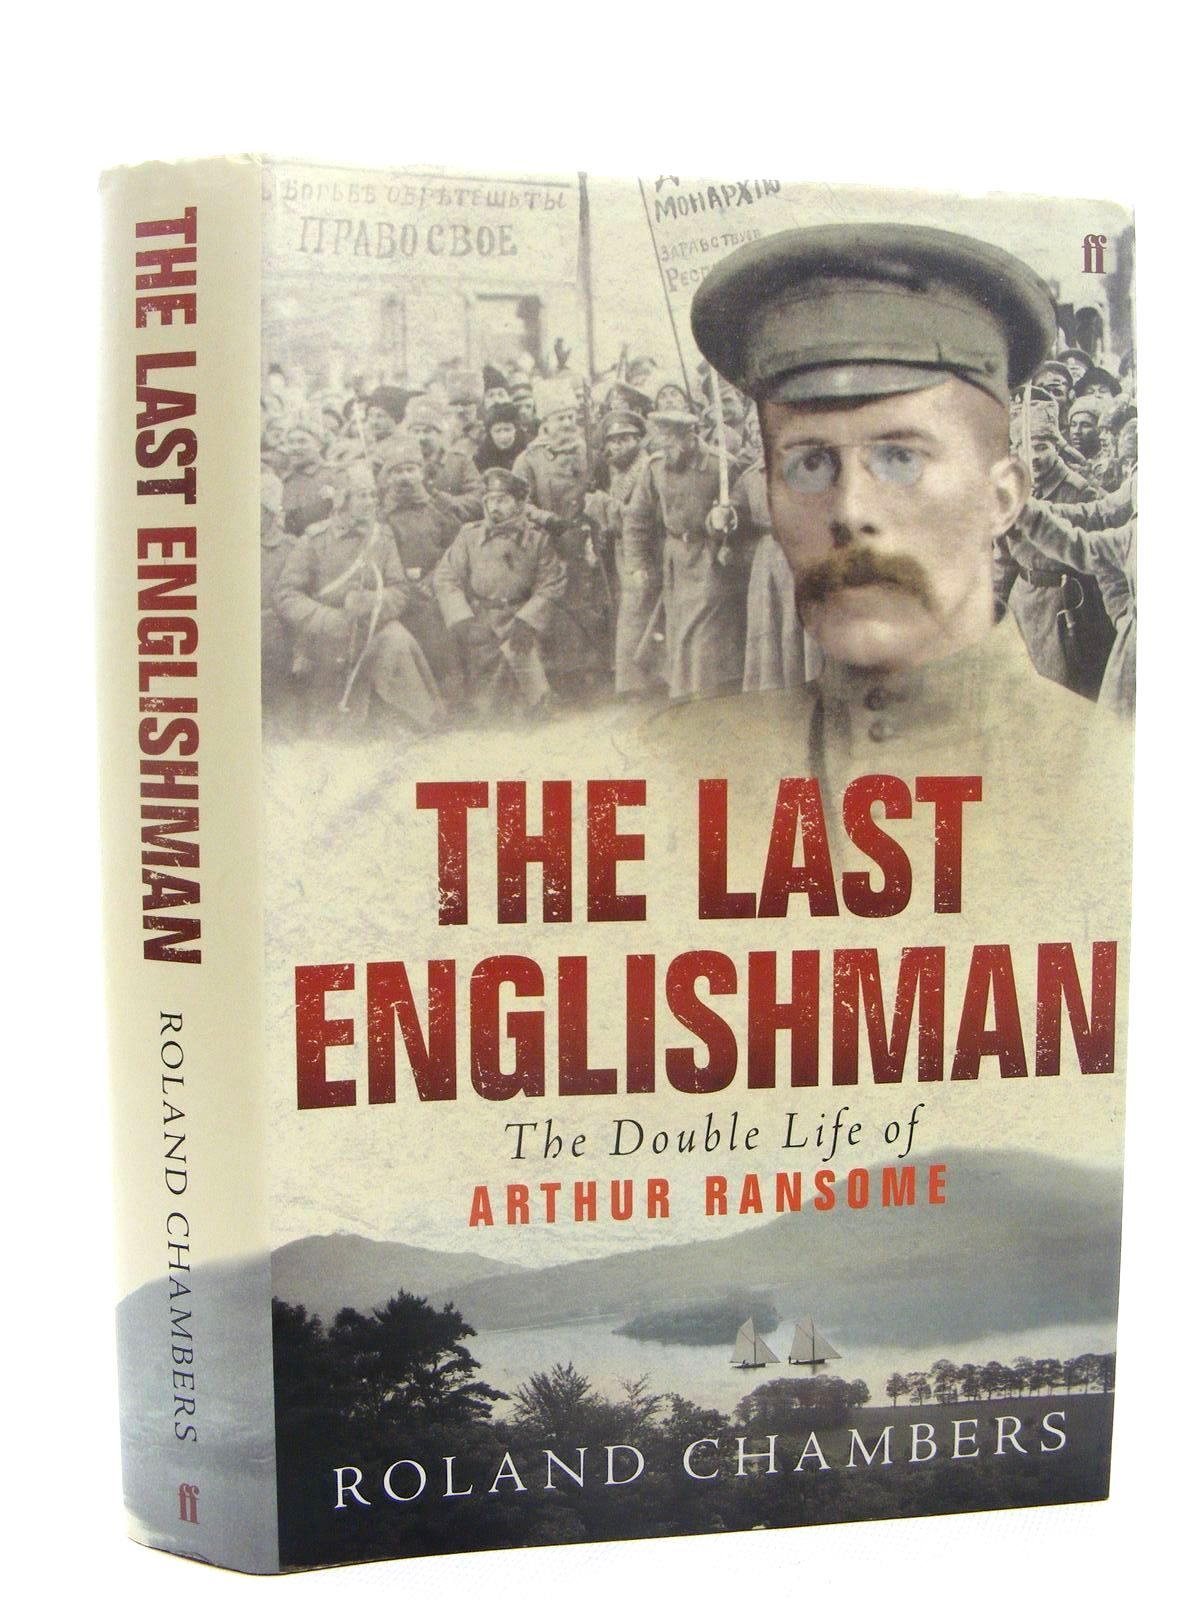 Photo of THE LAST ENGLISHMAN - THE DOUBLE LIFE OF ARTHUR RANSOME